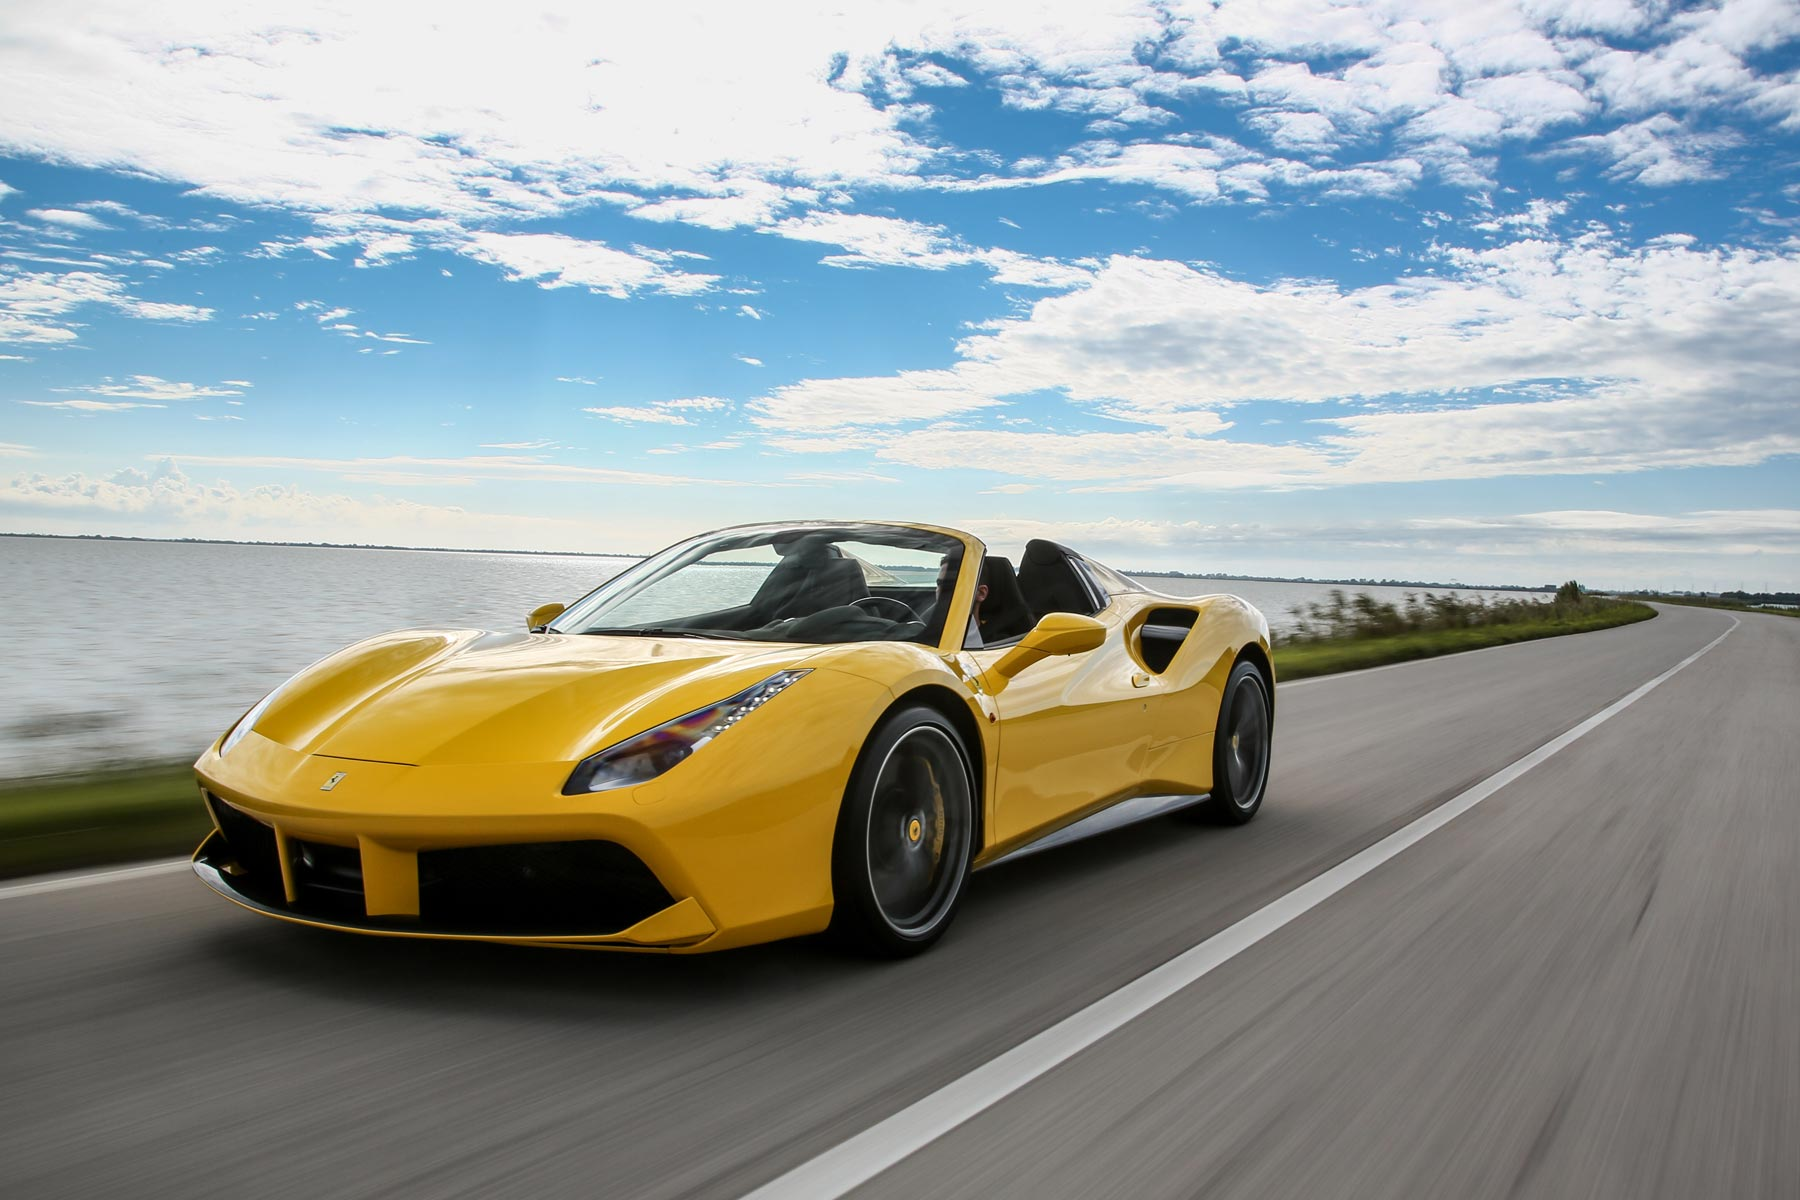 2016 Ferrari 488 Spider: On the road